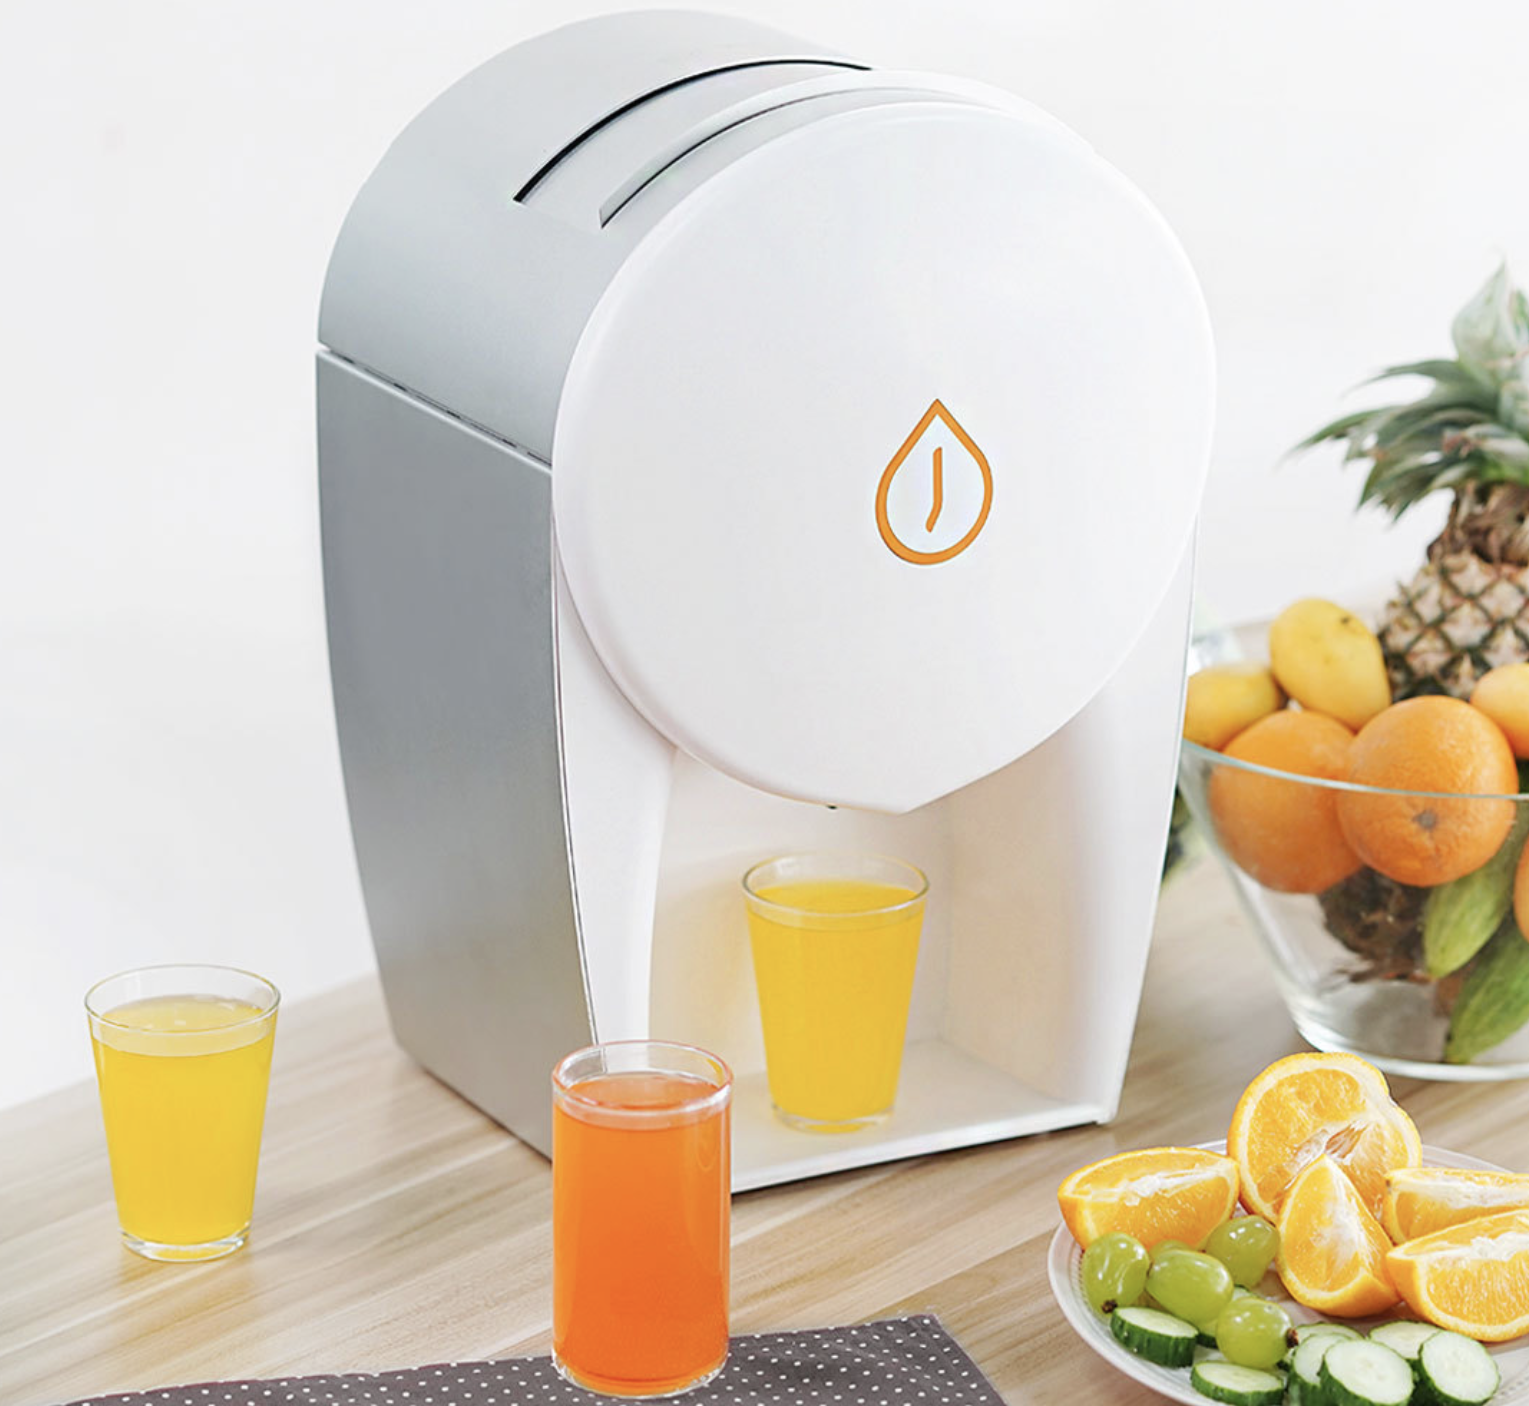 Xiaomi starts cooperation with a new company and presents a juicer